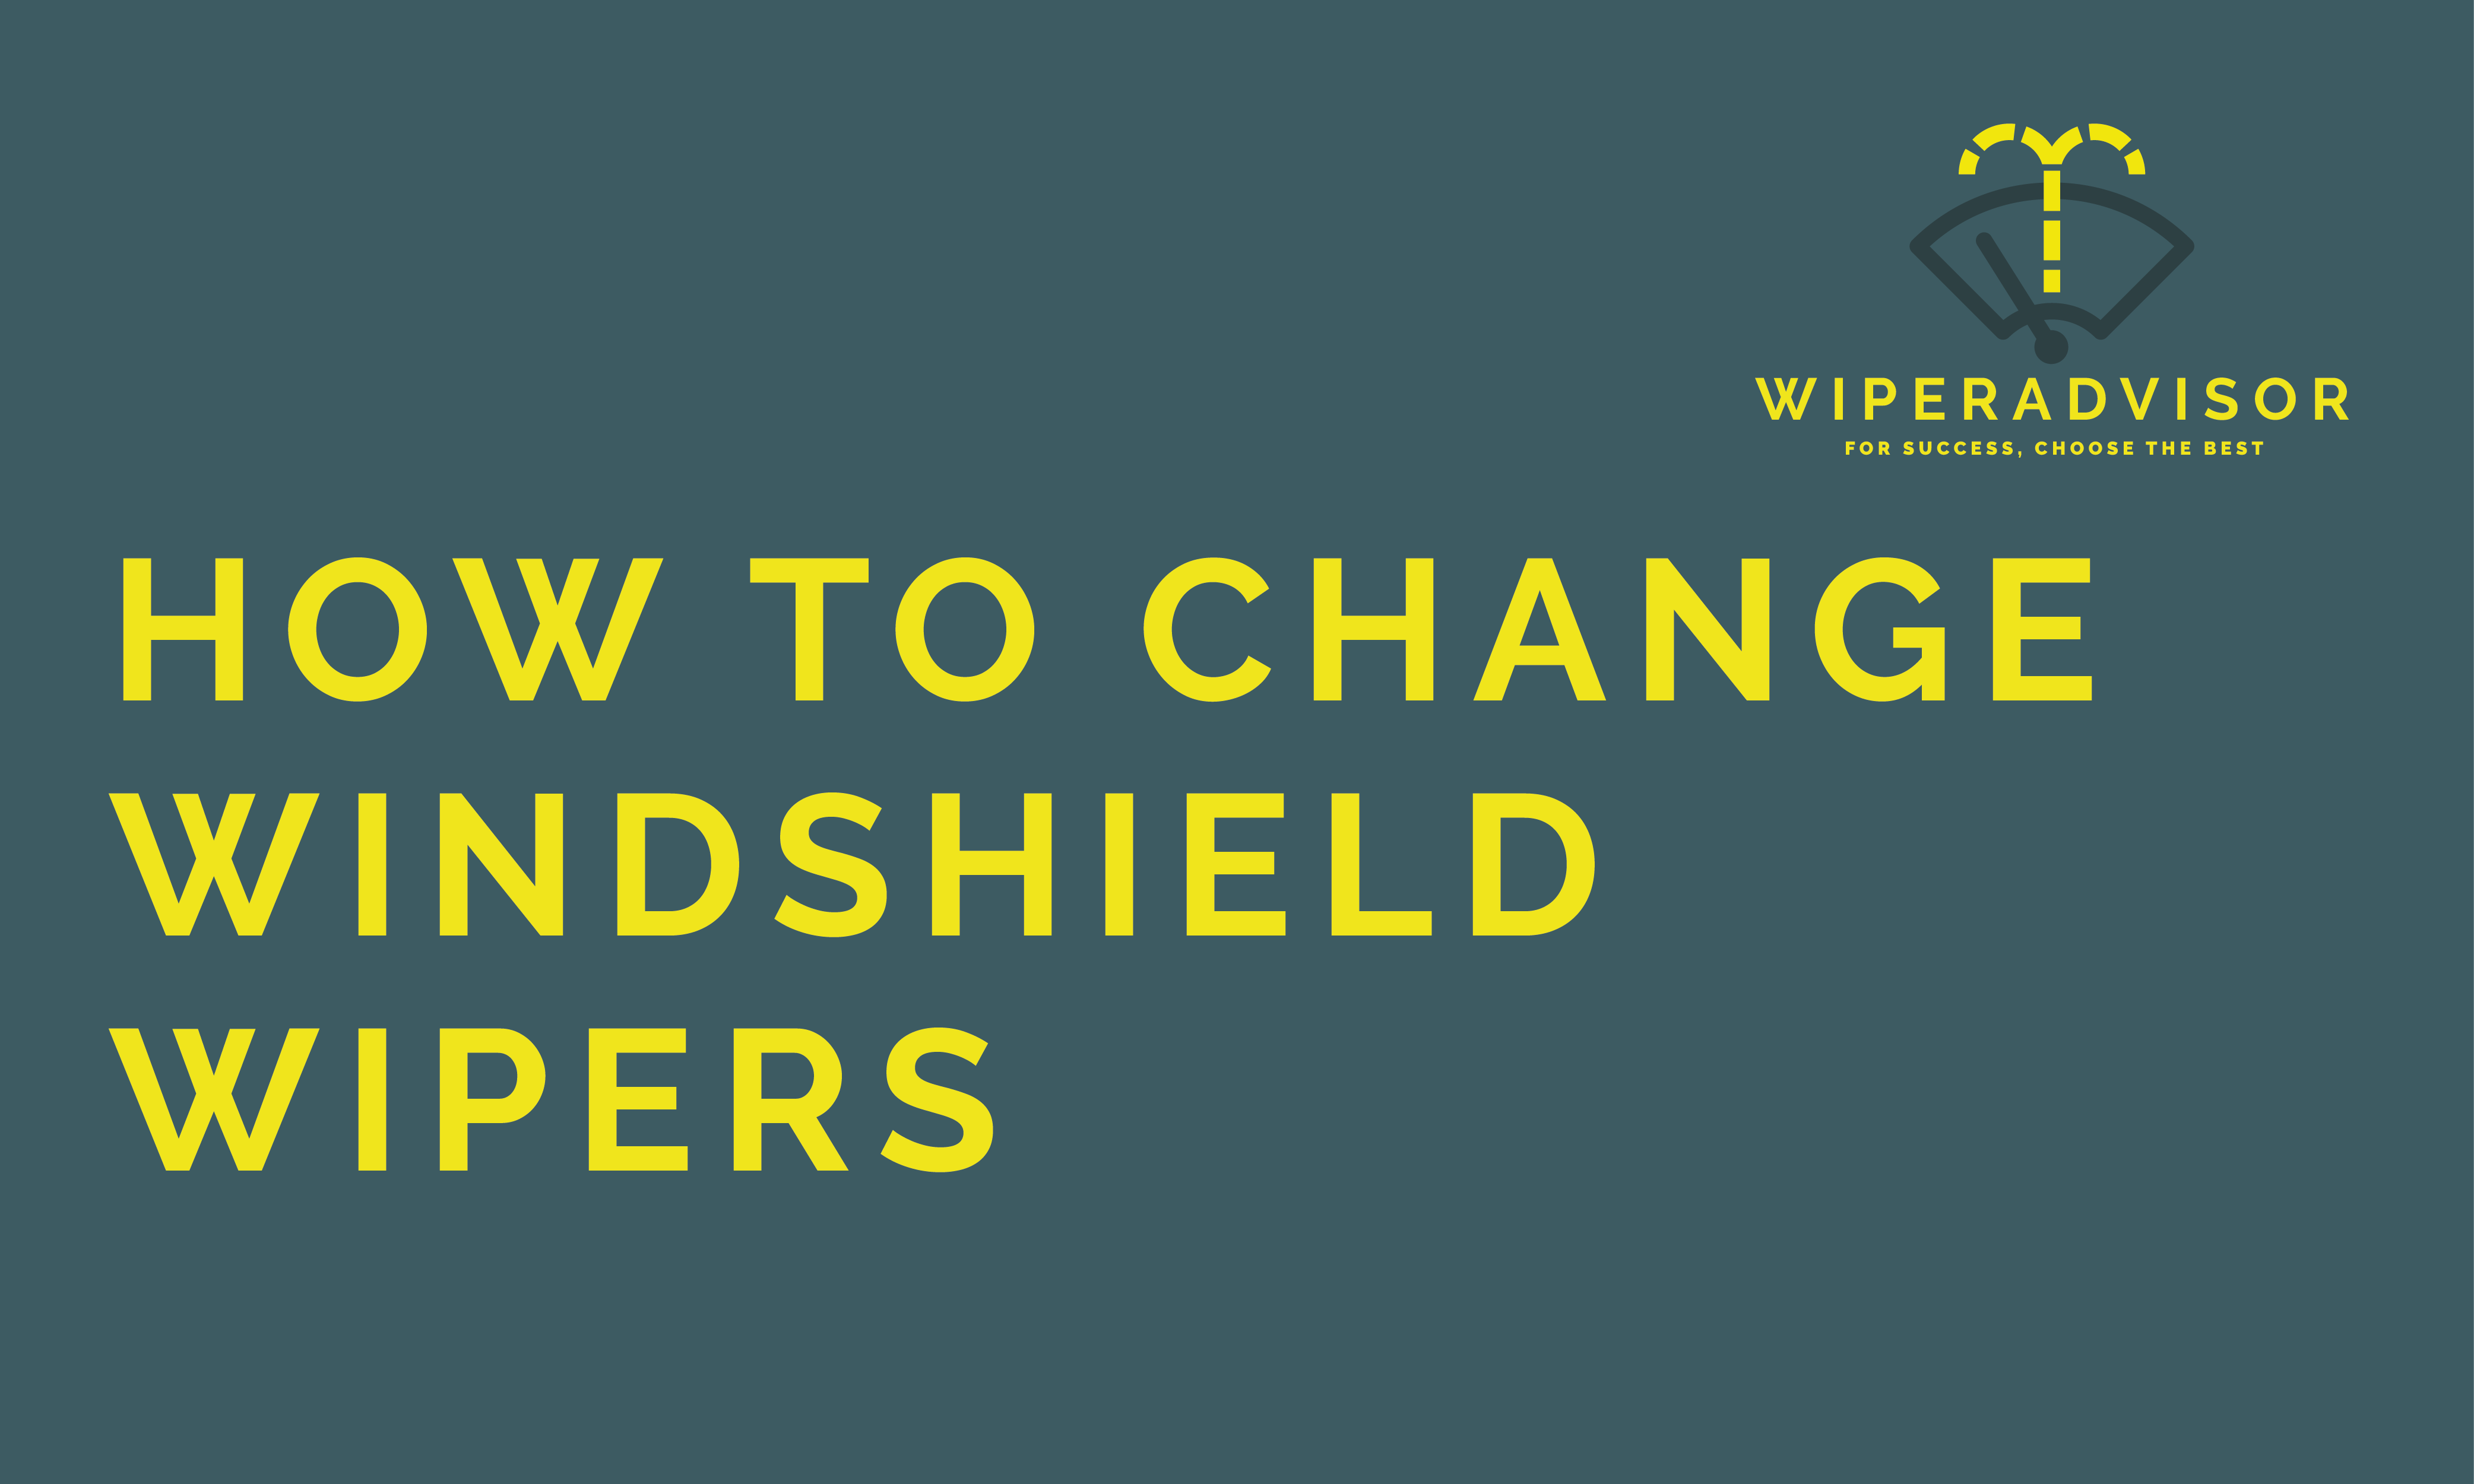 How to Clean Wiper Blades (March 2017 Wiper blades